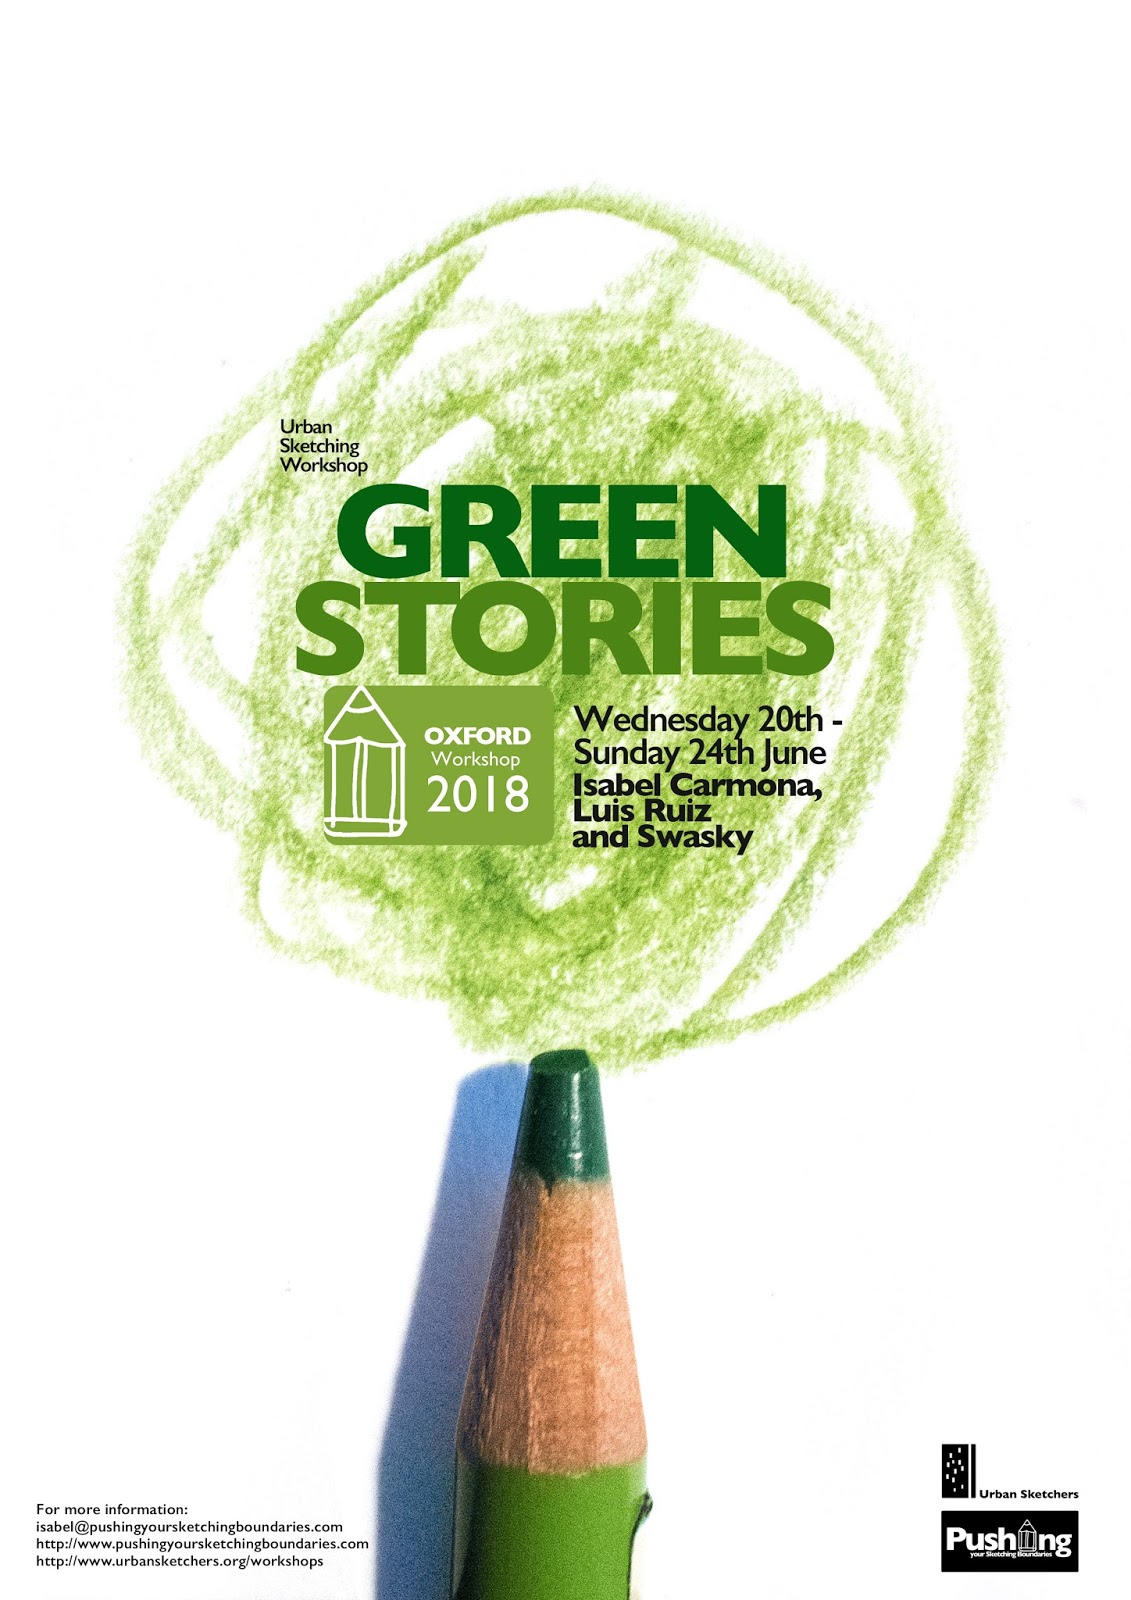 GREEN STORIES - PYSB in Oxford from 20th to 24th June, 2018